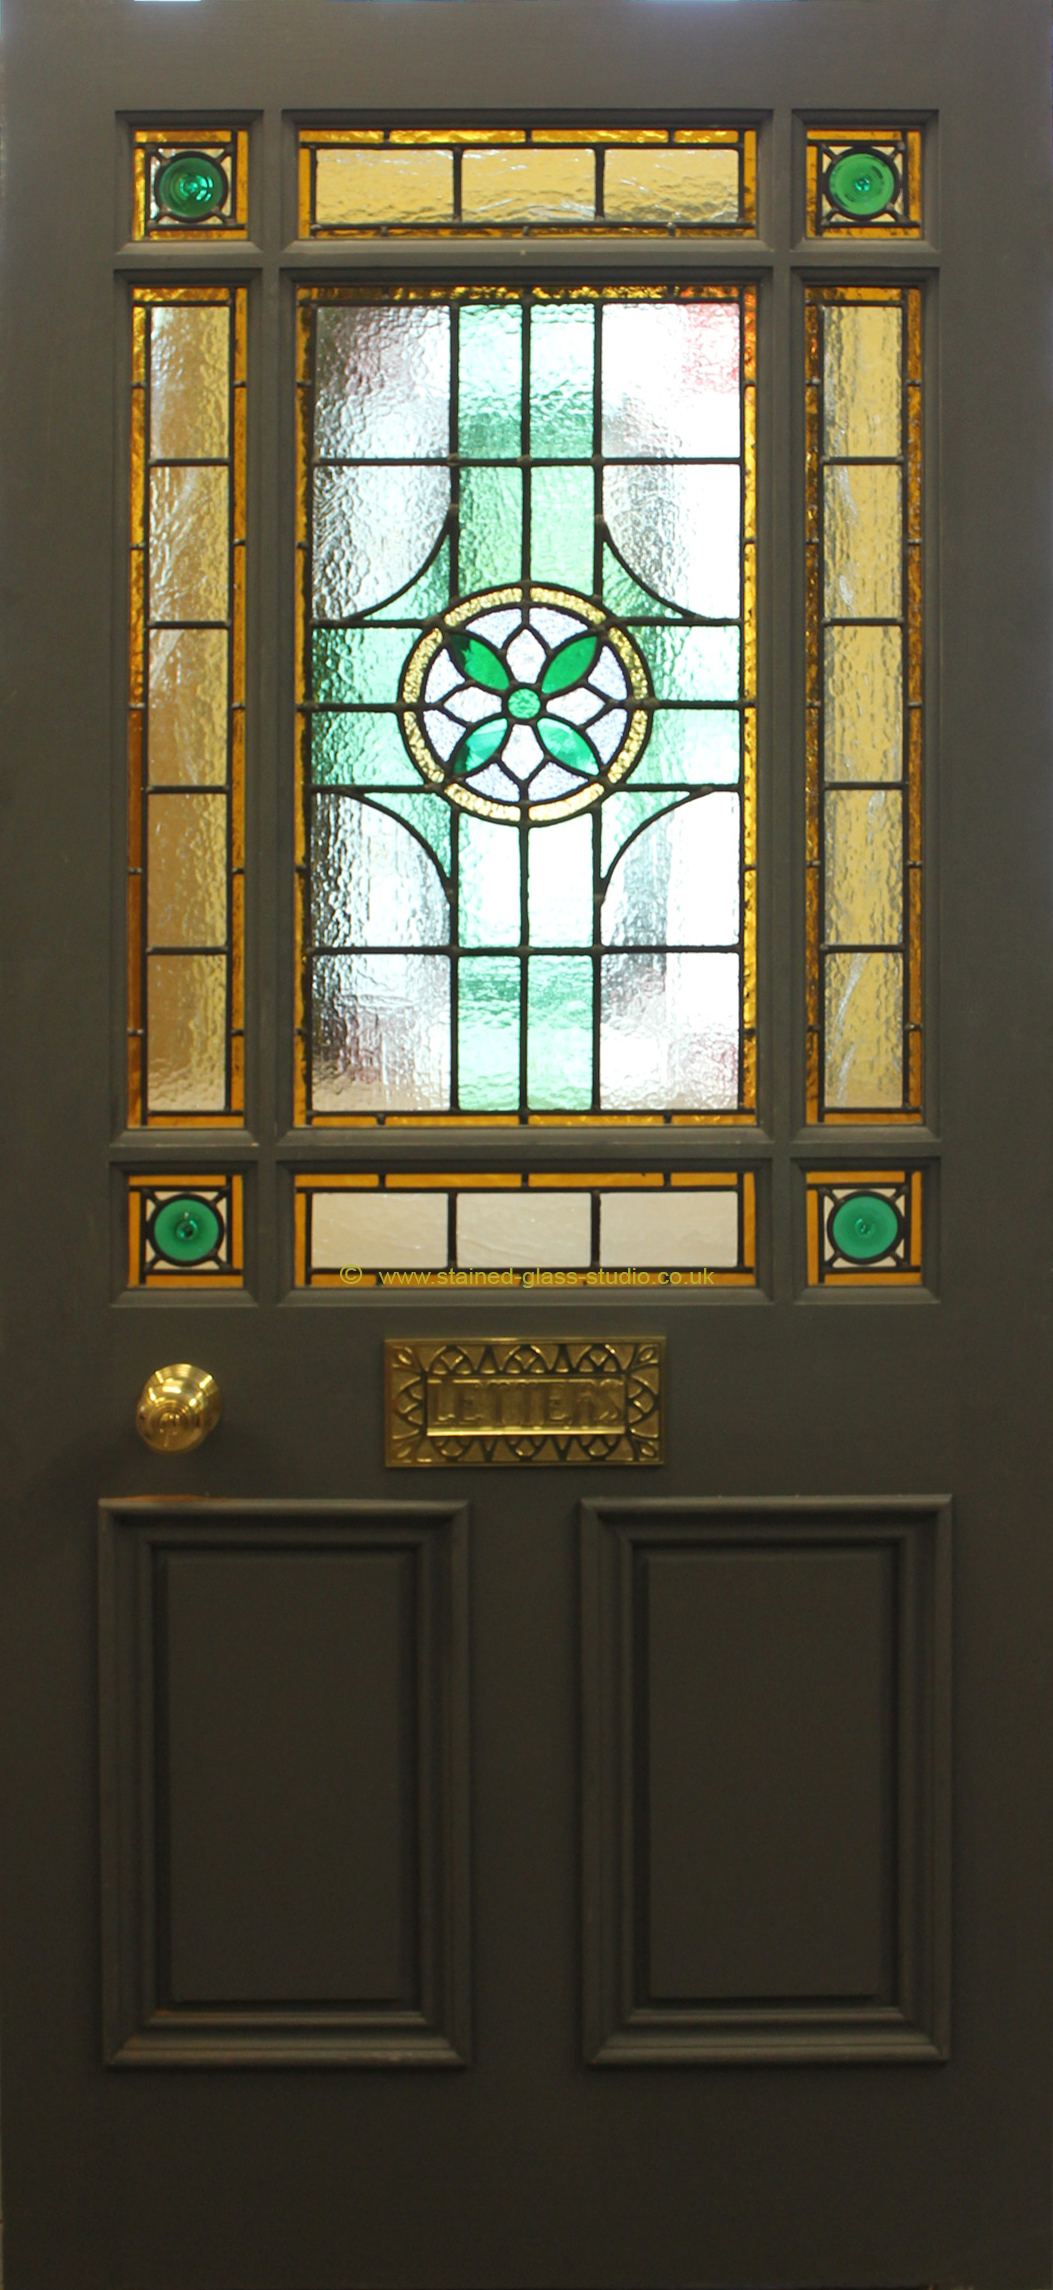 Victorian Style 9 Pane Glazed Door (with Glazing Bars) Redwood £430.  Tulipwood £470. Utile £520